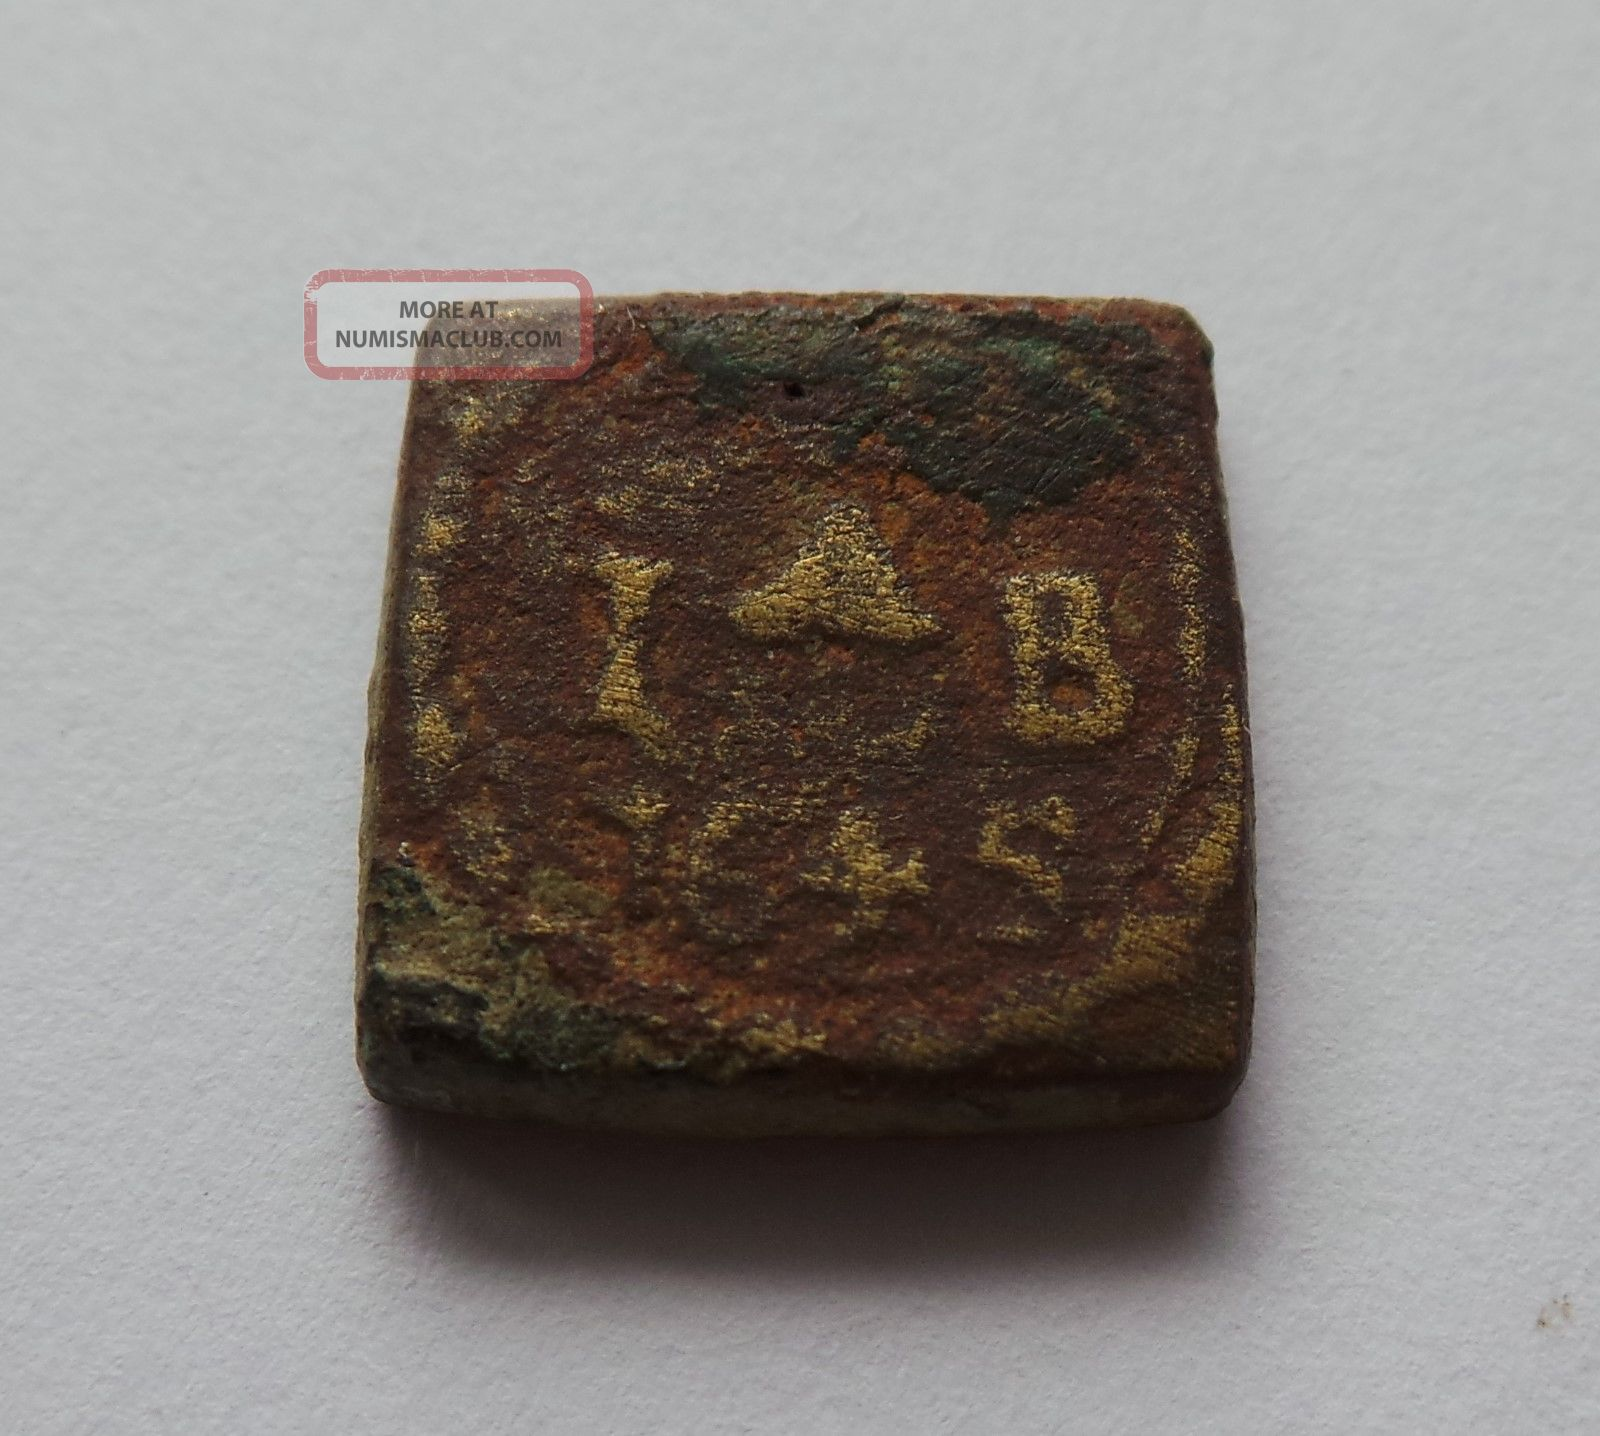 Bronze Coin Weight Dated 1645 - Coinweight - Detecting Find Amsterdam. Europe photo